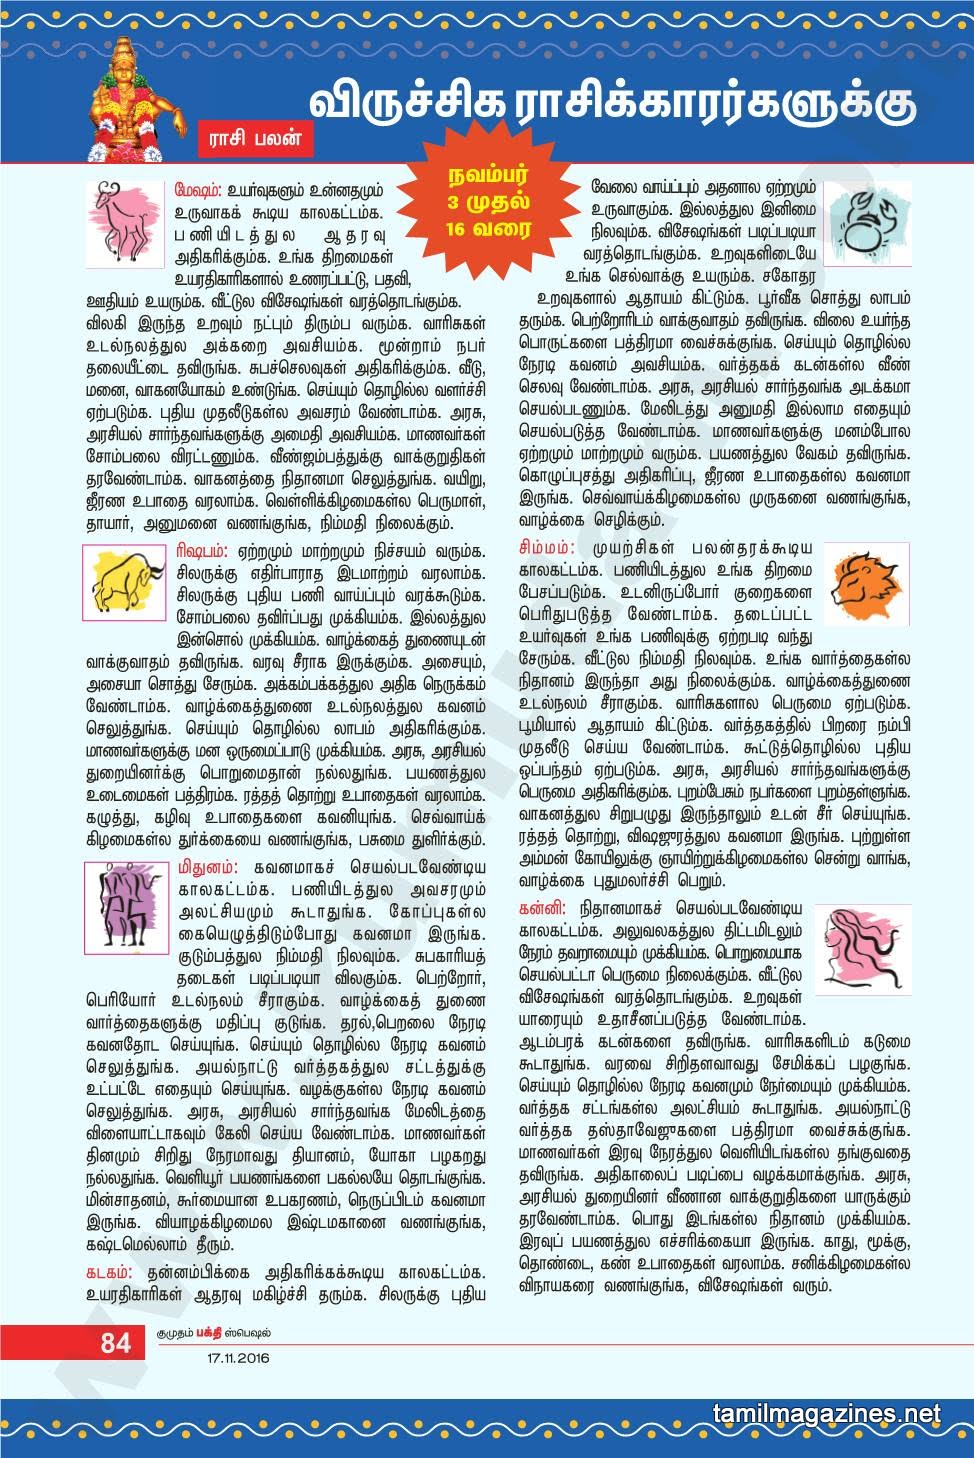 Rasipalan predictions by Jothidar Shelvi